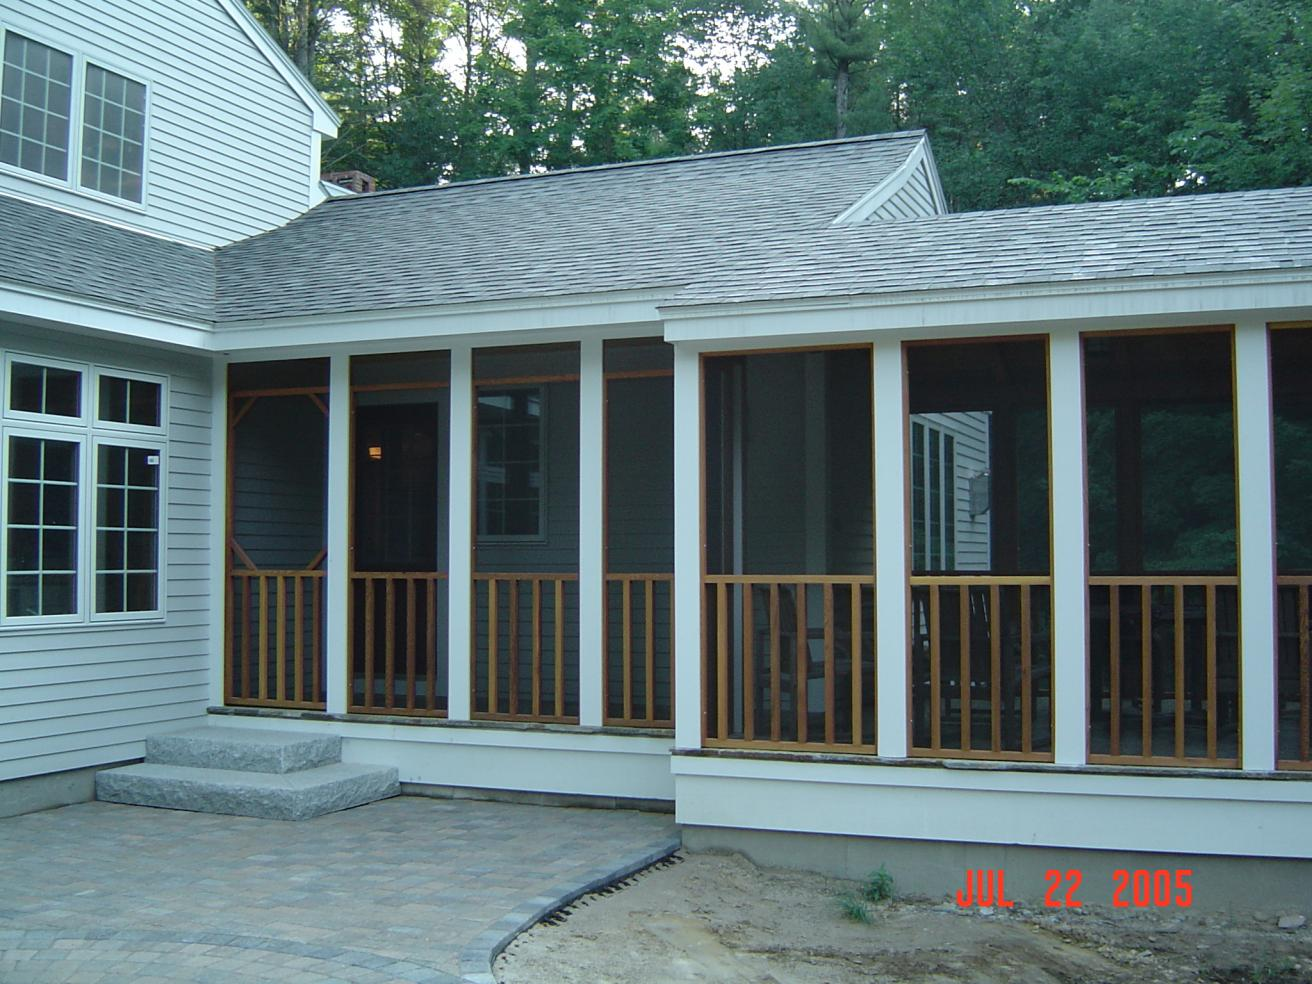 Screened porch frame design-tinglepaugh-094.jpg